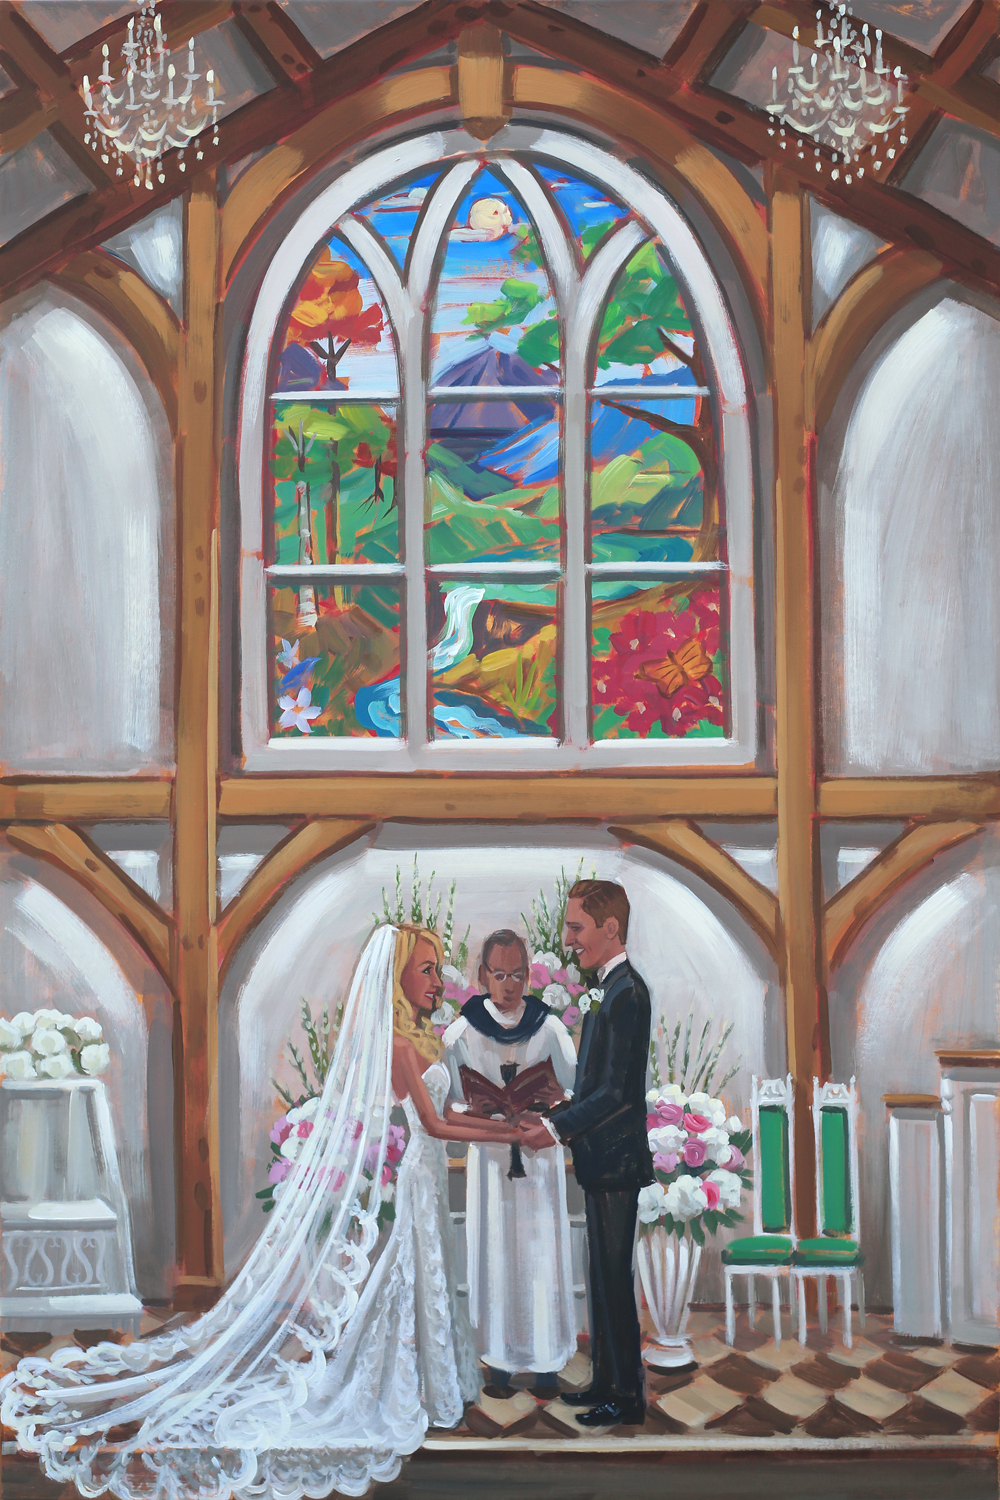 Alexandra + Jeff's vows captured on canvas by Live Wedding Painter, Ben Keys, of Wed on Canvas.